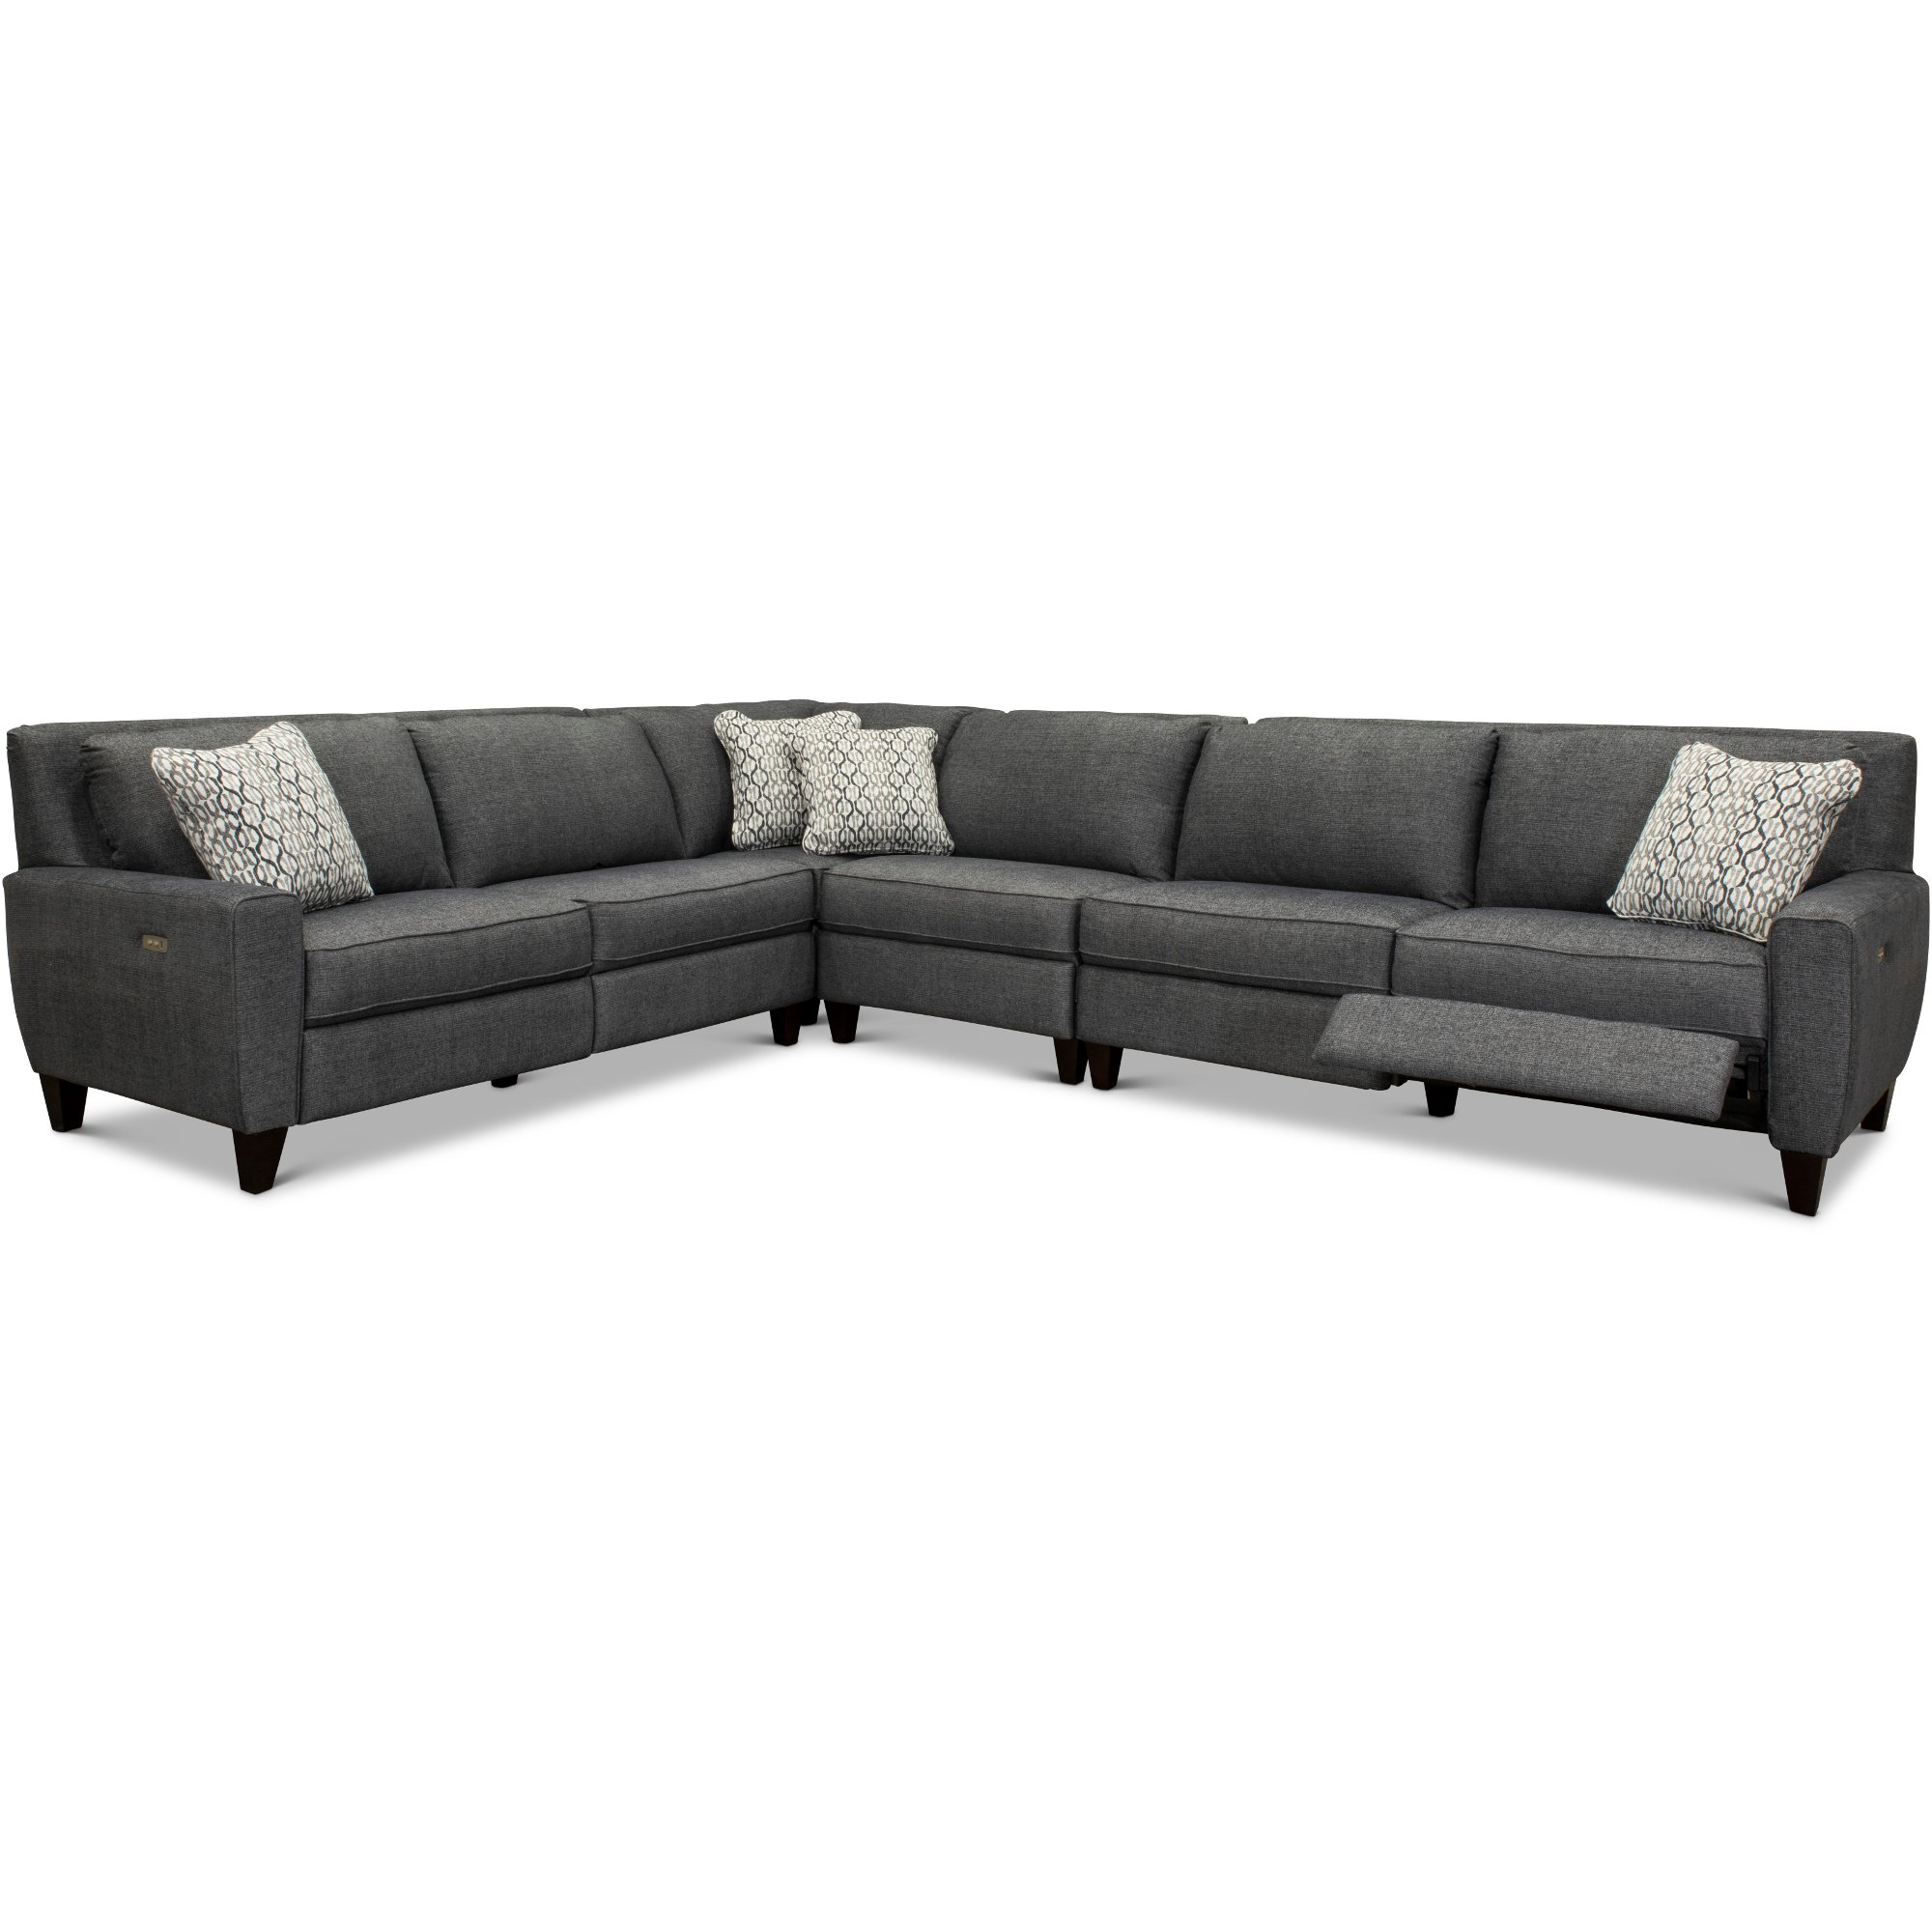 Charcoal Gray Duo 4 Piece Reclining Sectional Sofa E Rc Willey Furniture